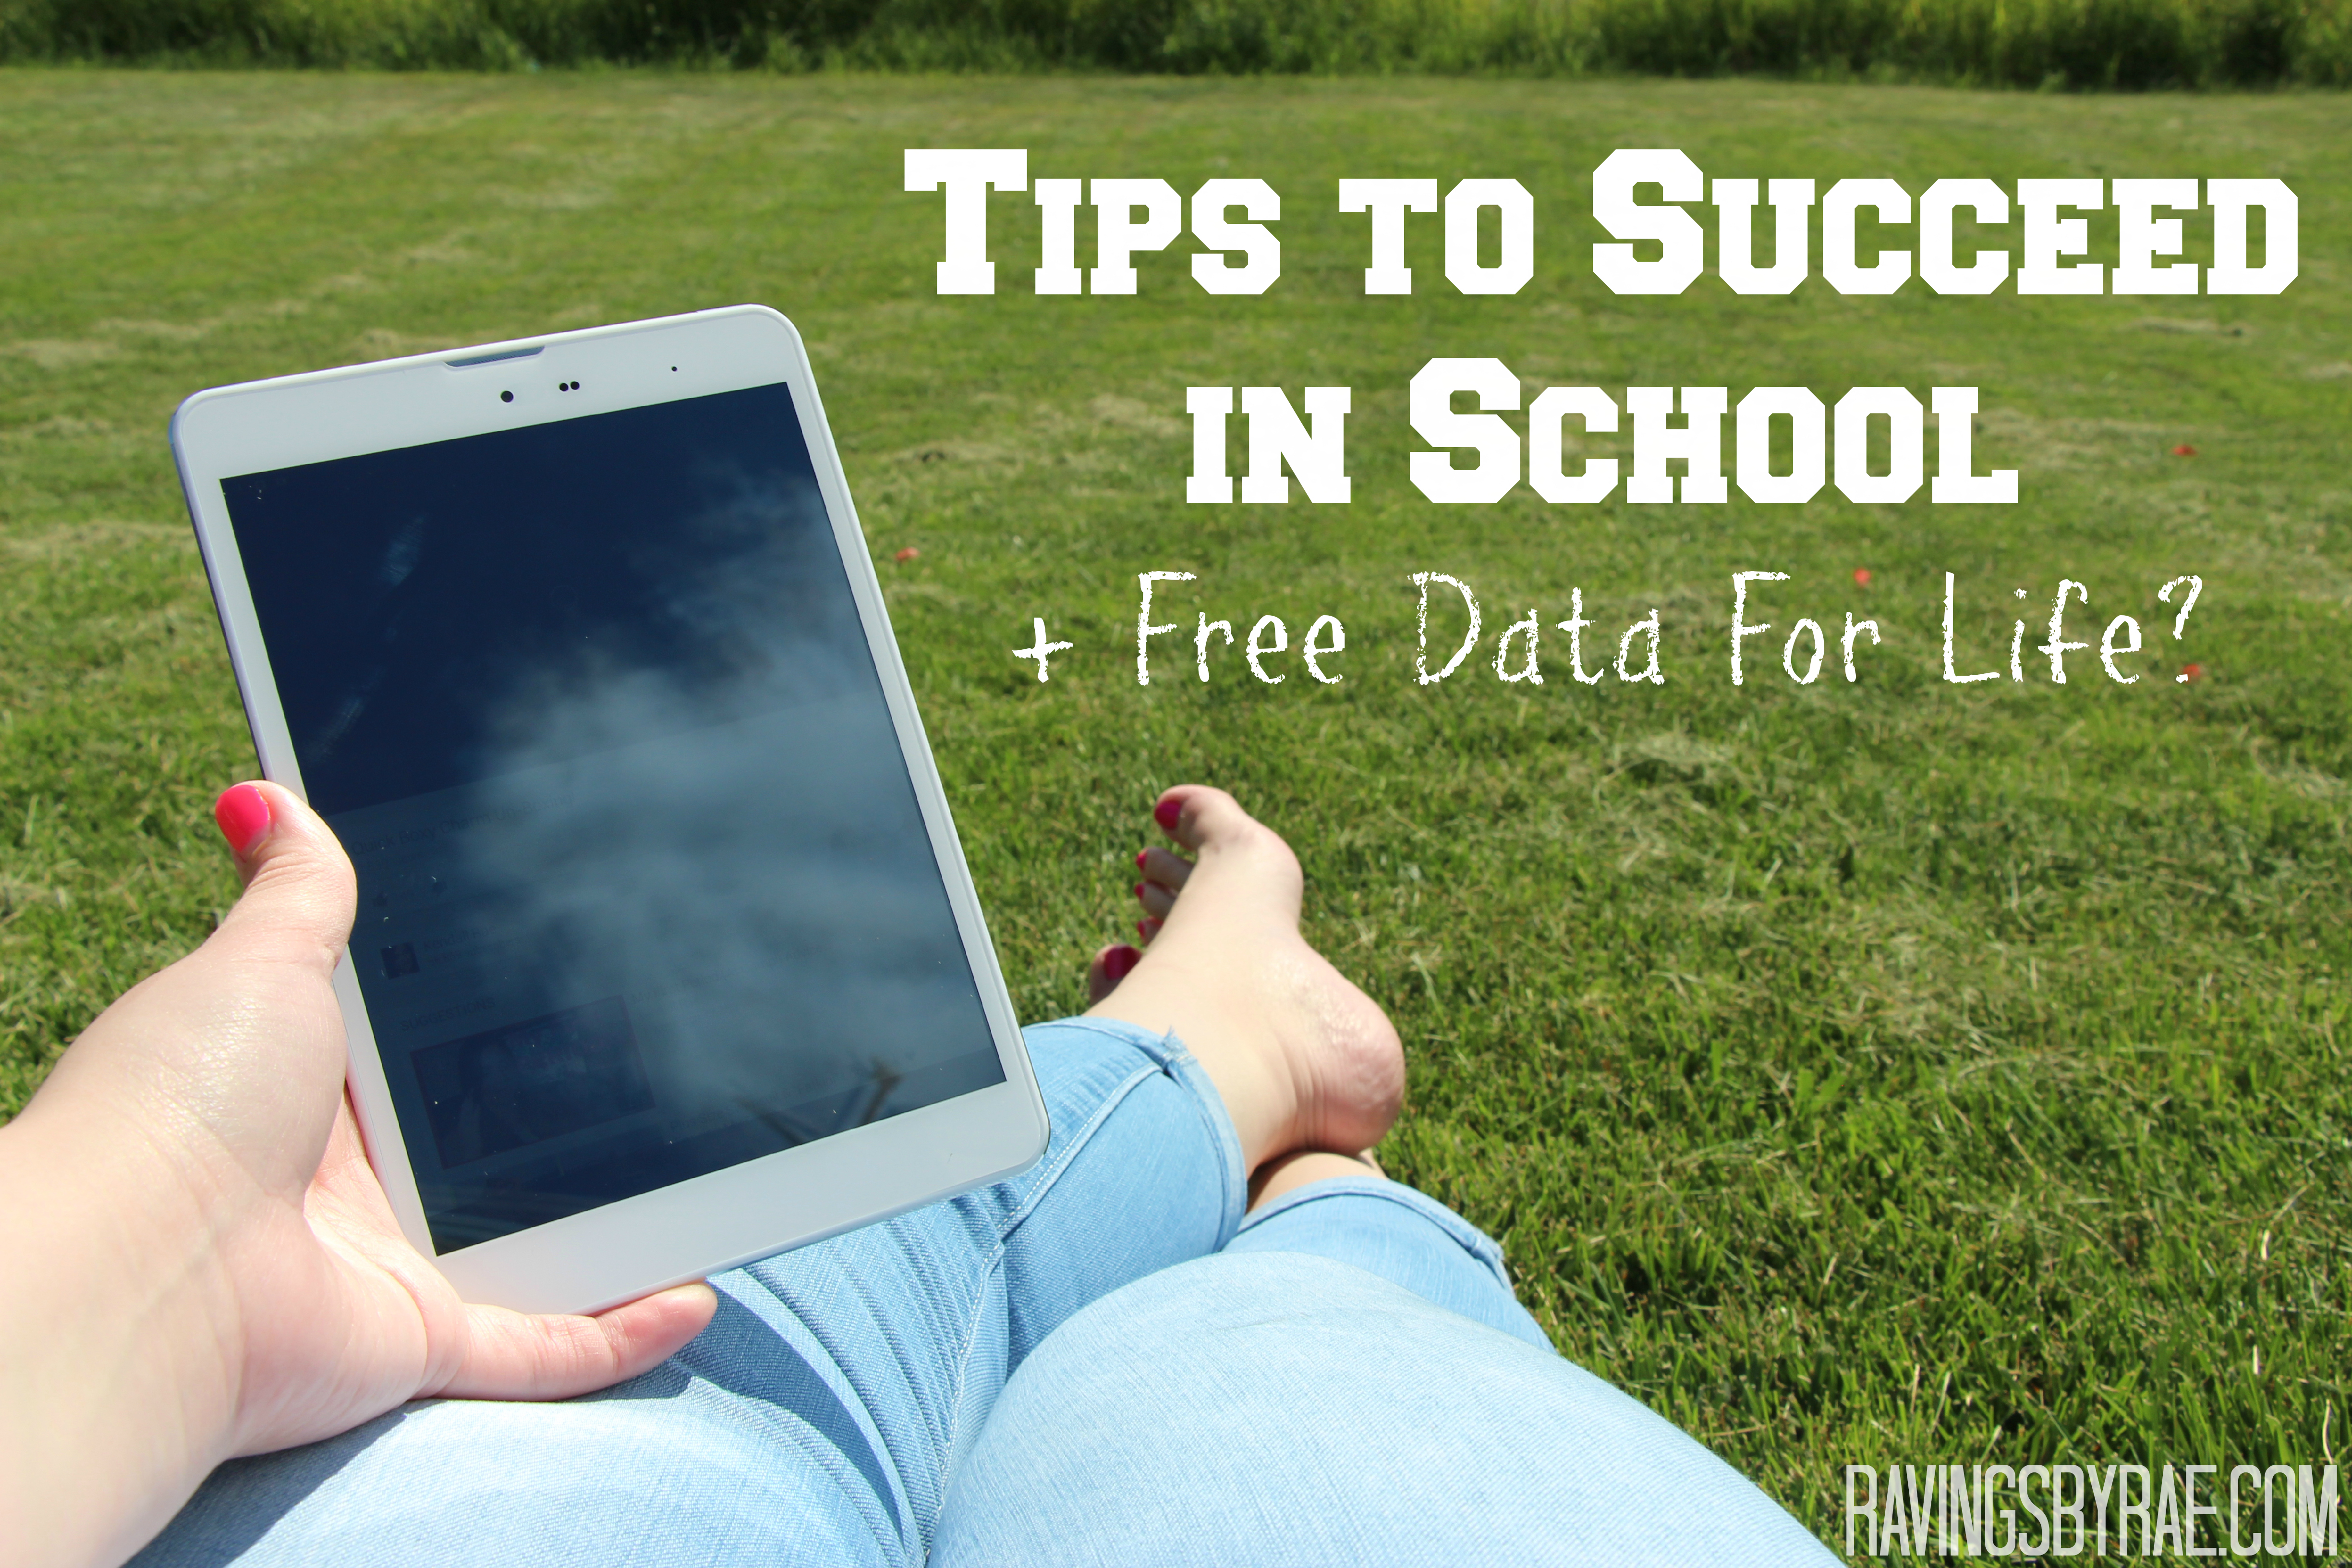 Tips To Succeed in School & My New T-Mobile 4G Tablet #shop 2